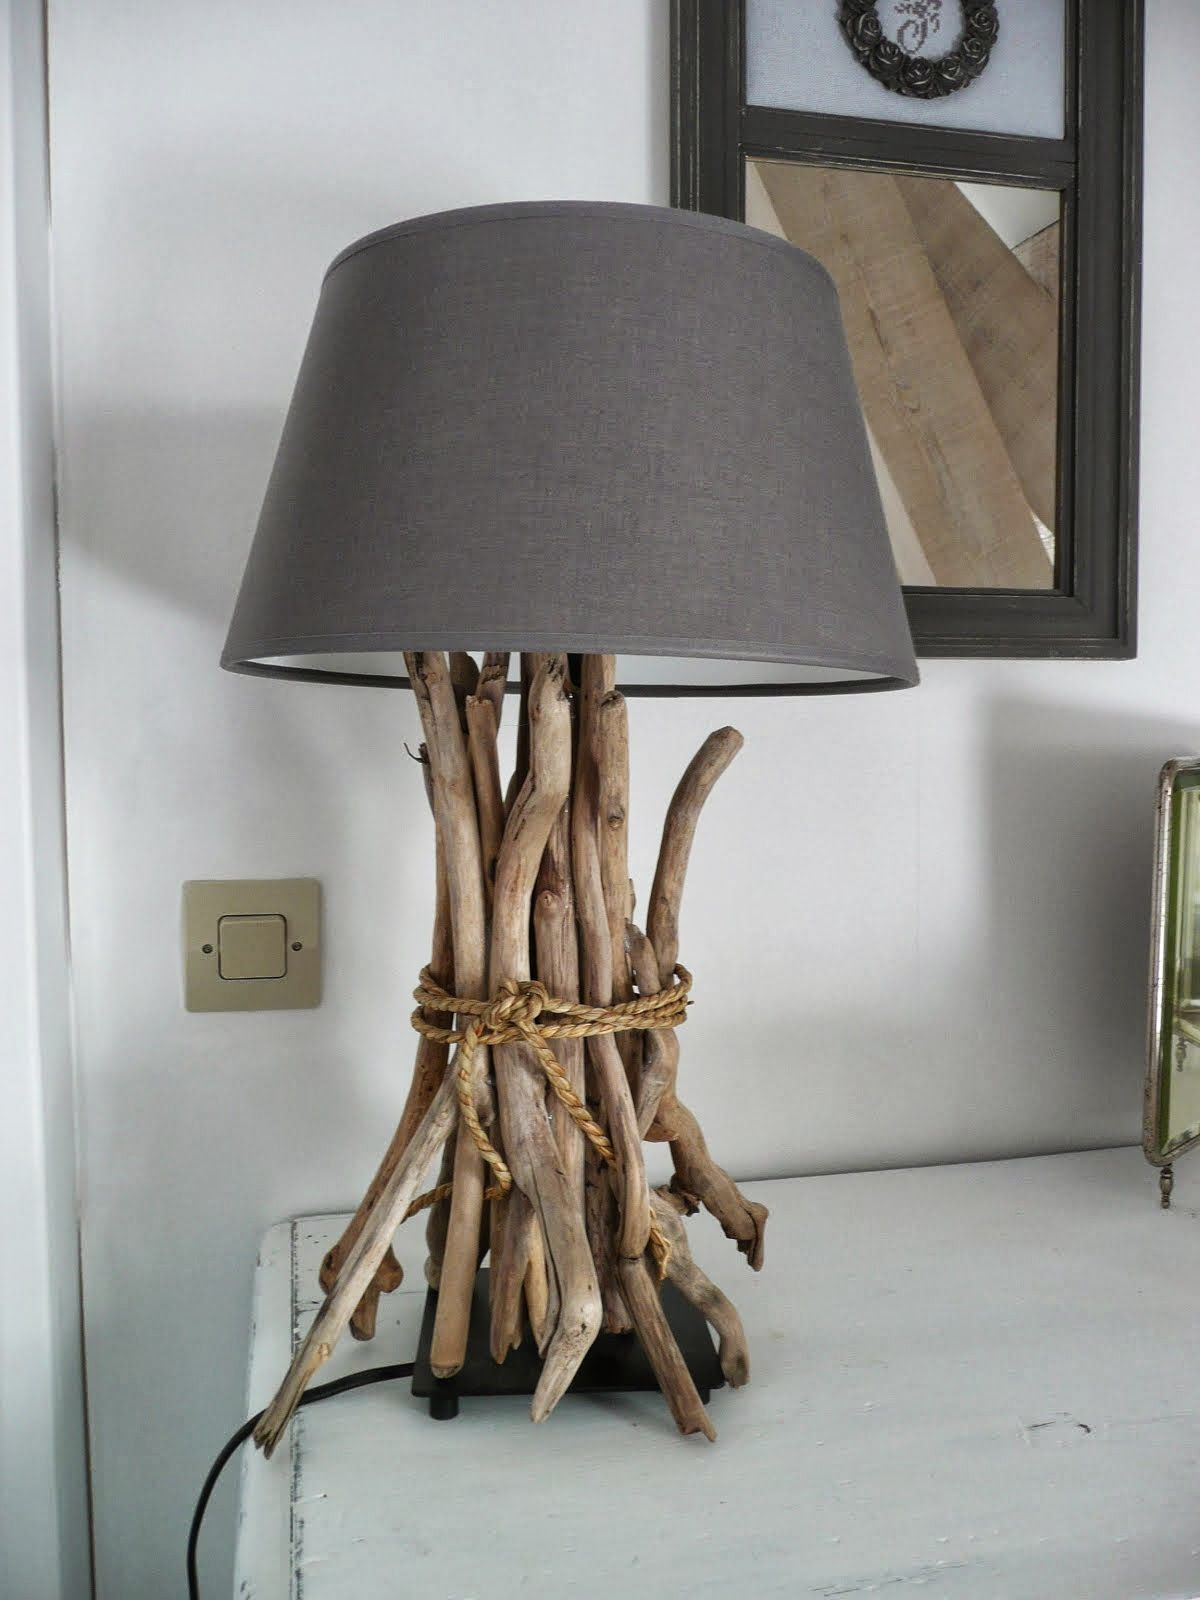 pict light styles tone uk and kitty shade white lamp fascinating wood shocking floor for tfast wooden blue tripod natural sleek base inspiration